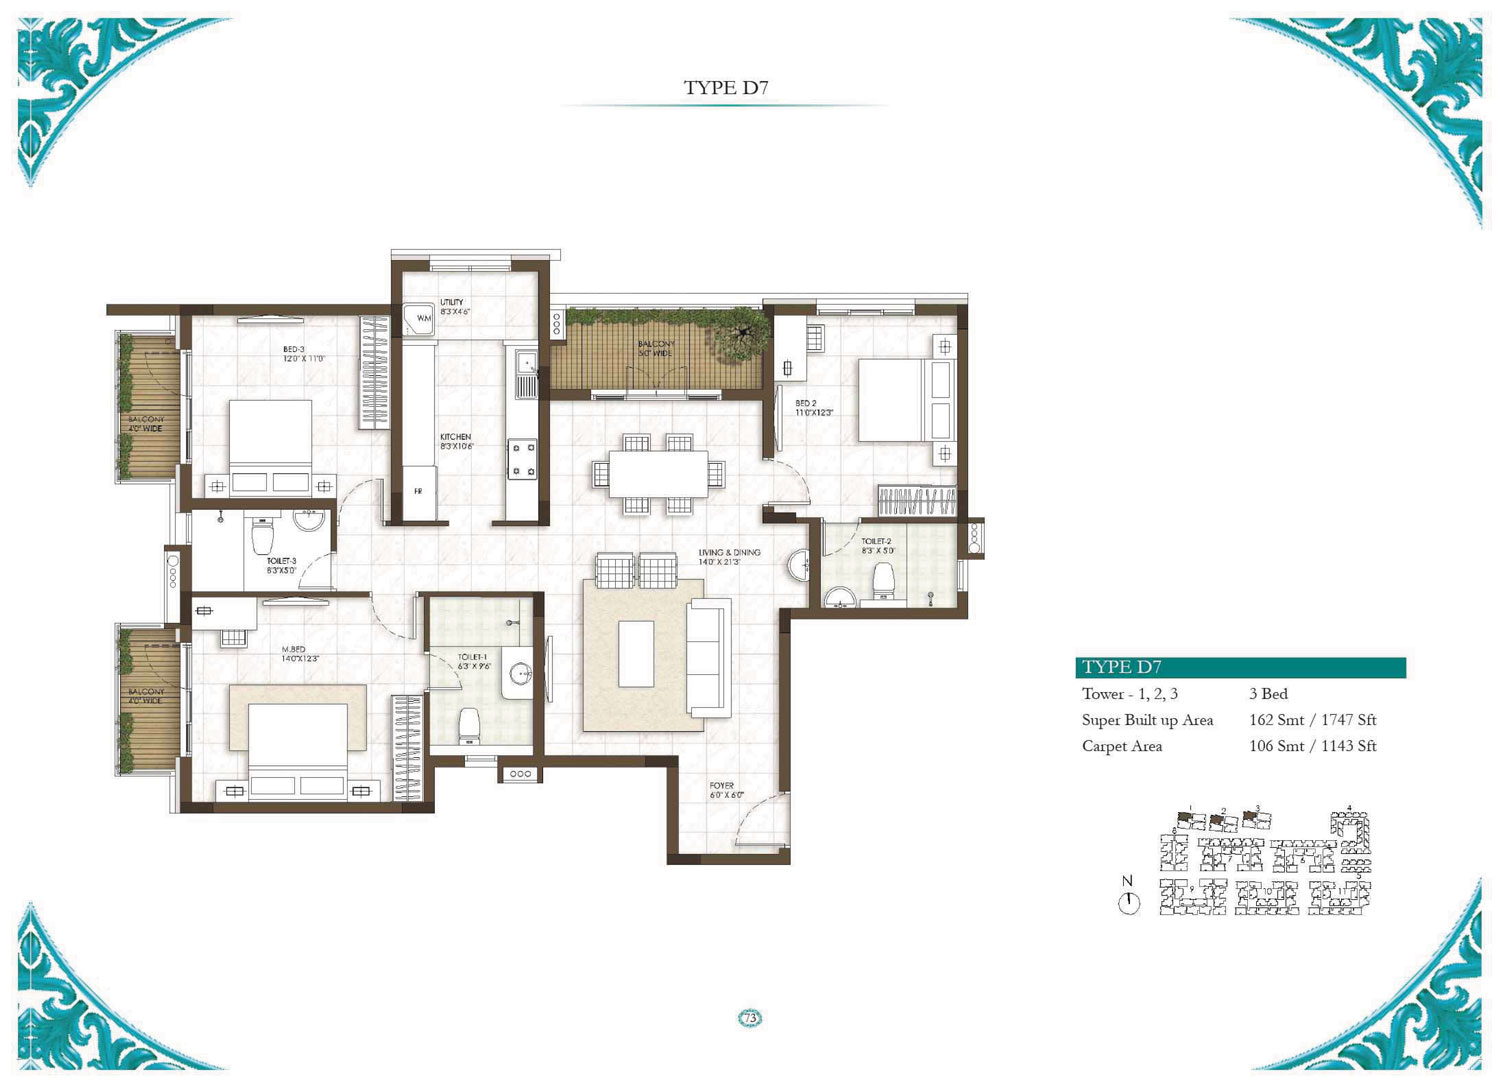 Type D7 - 3 Bed - 1747 Sq Ft